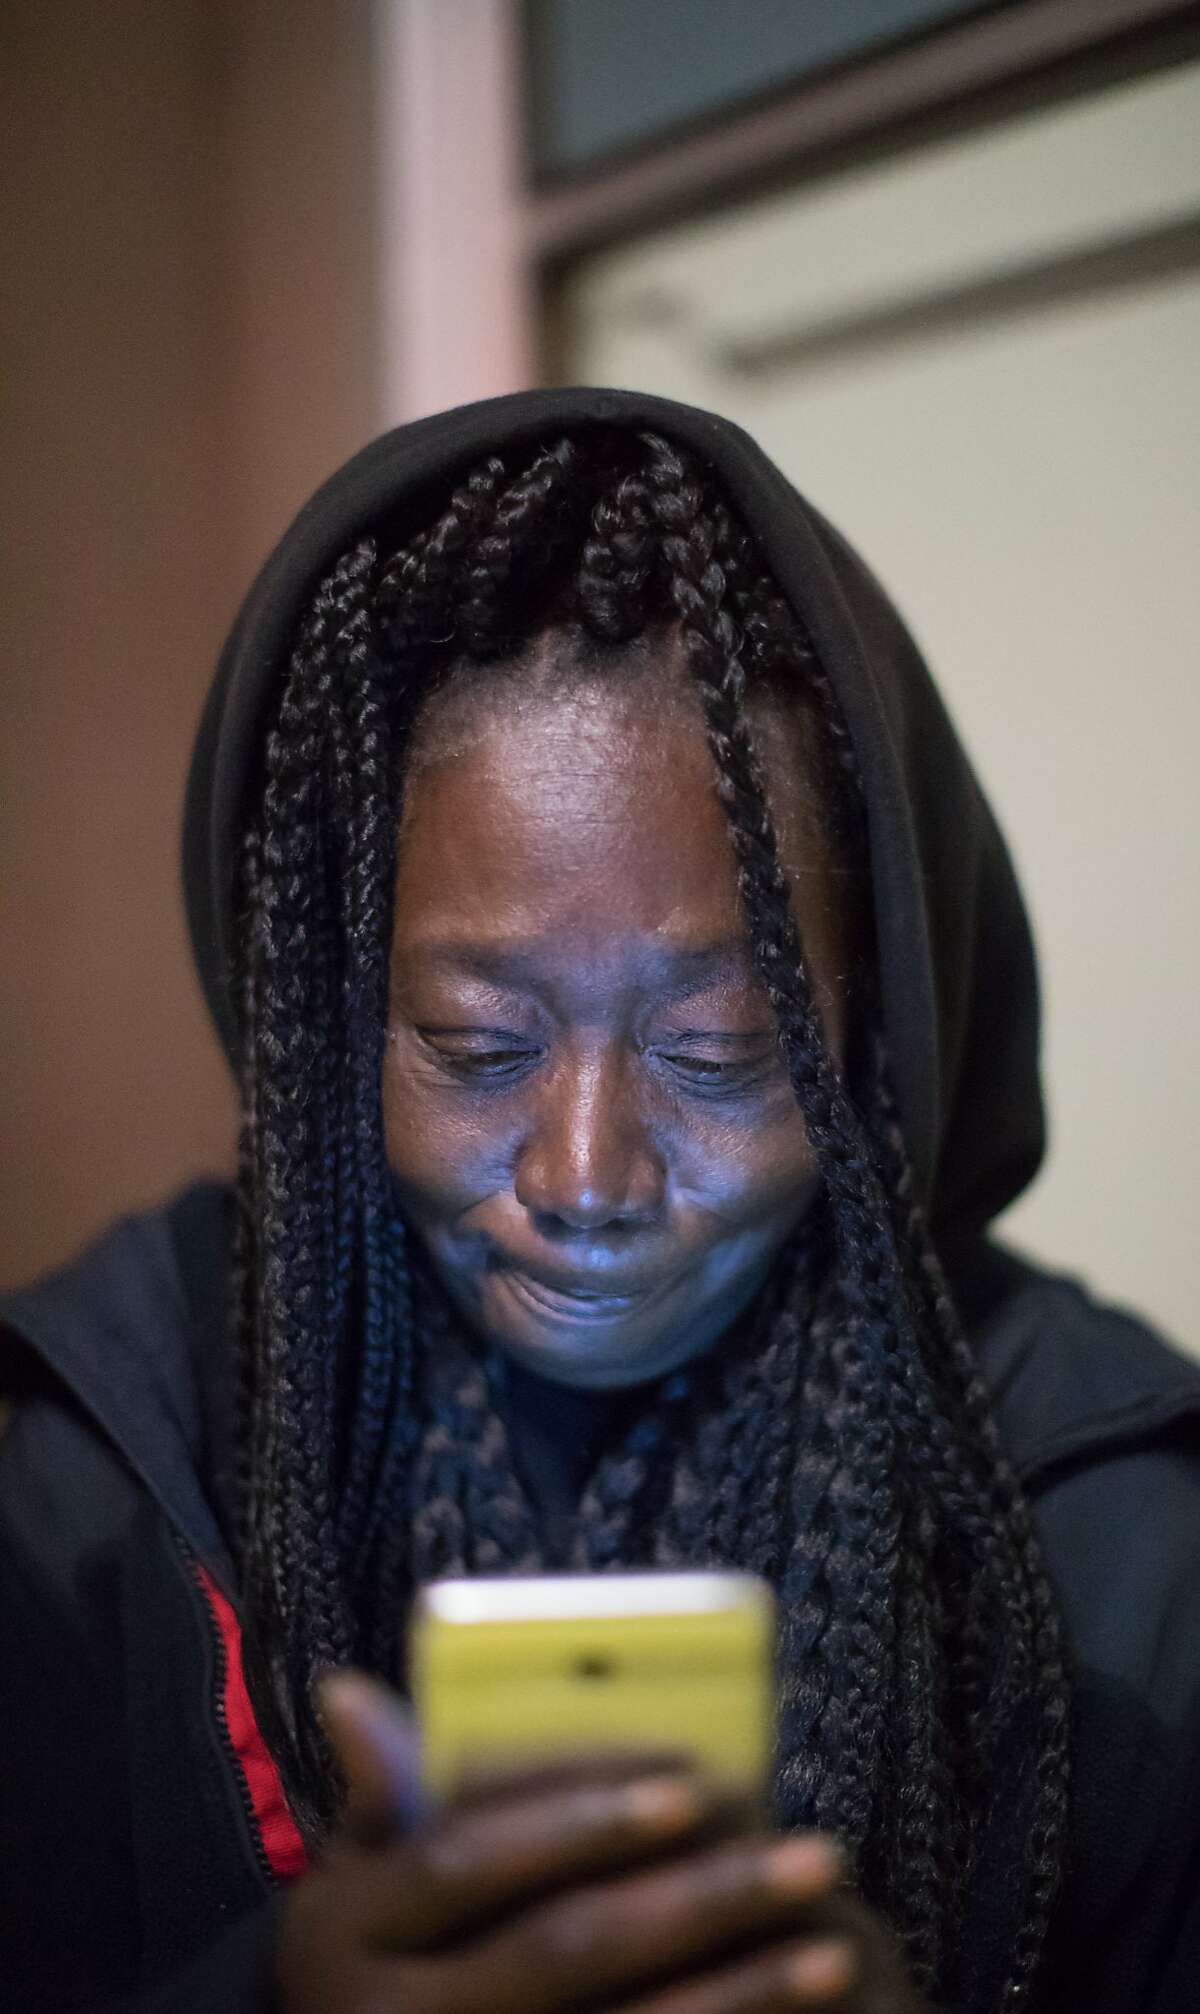 Marie McKinzie looks at her phone before going to sleep on Thursday, Dec. 20, 2018, in Oakland, Calif.